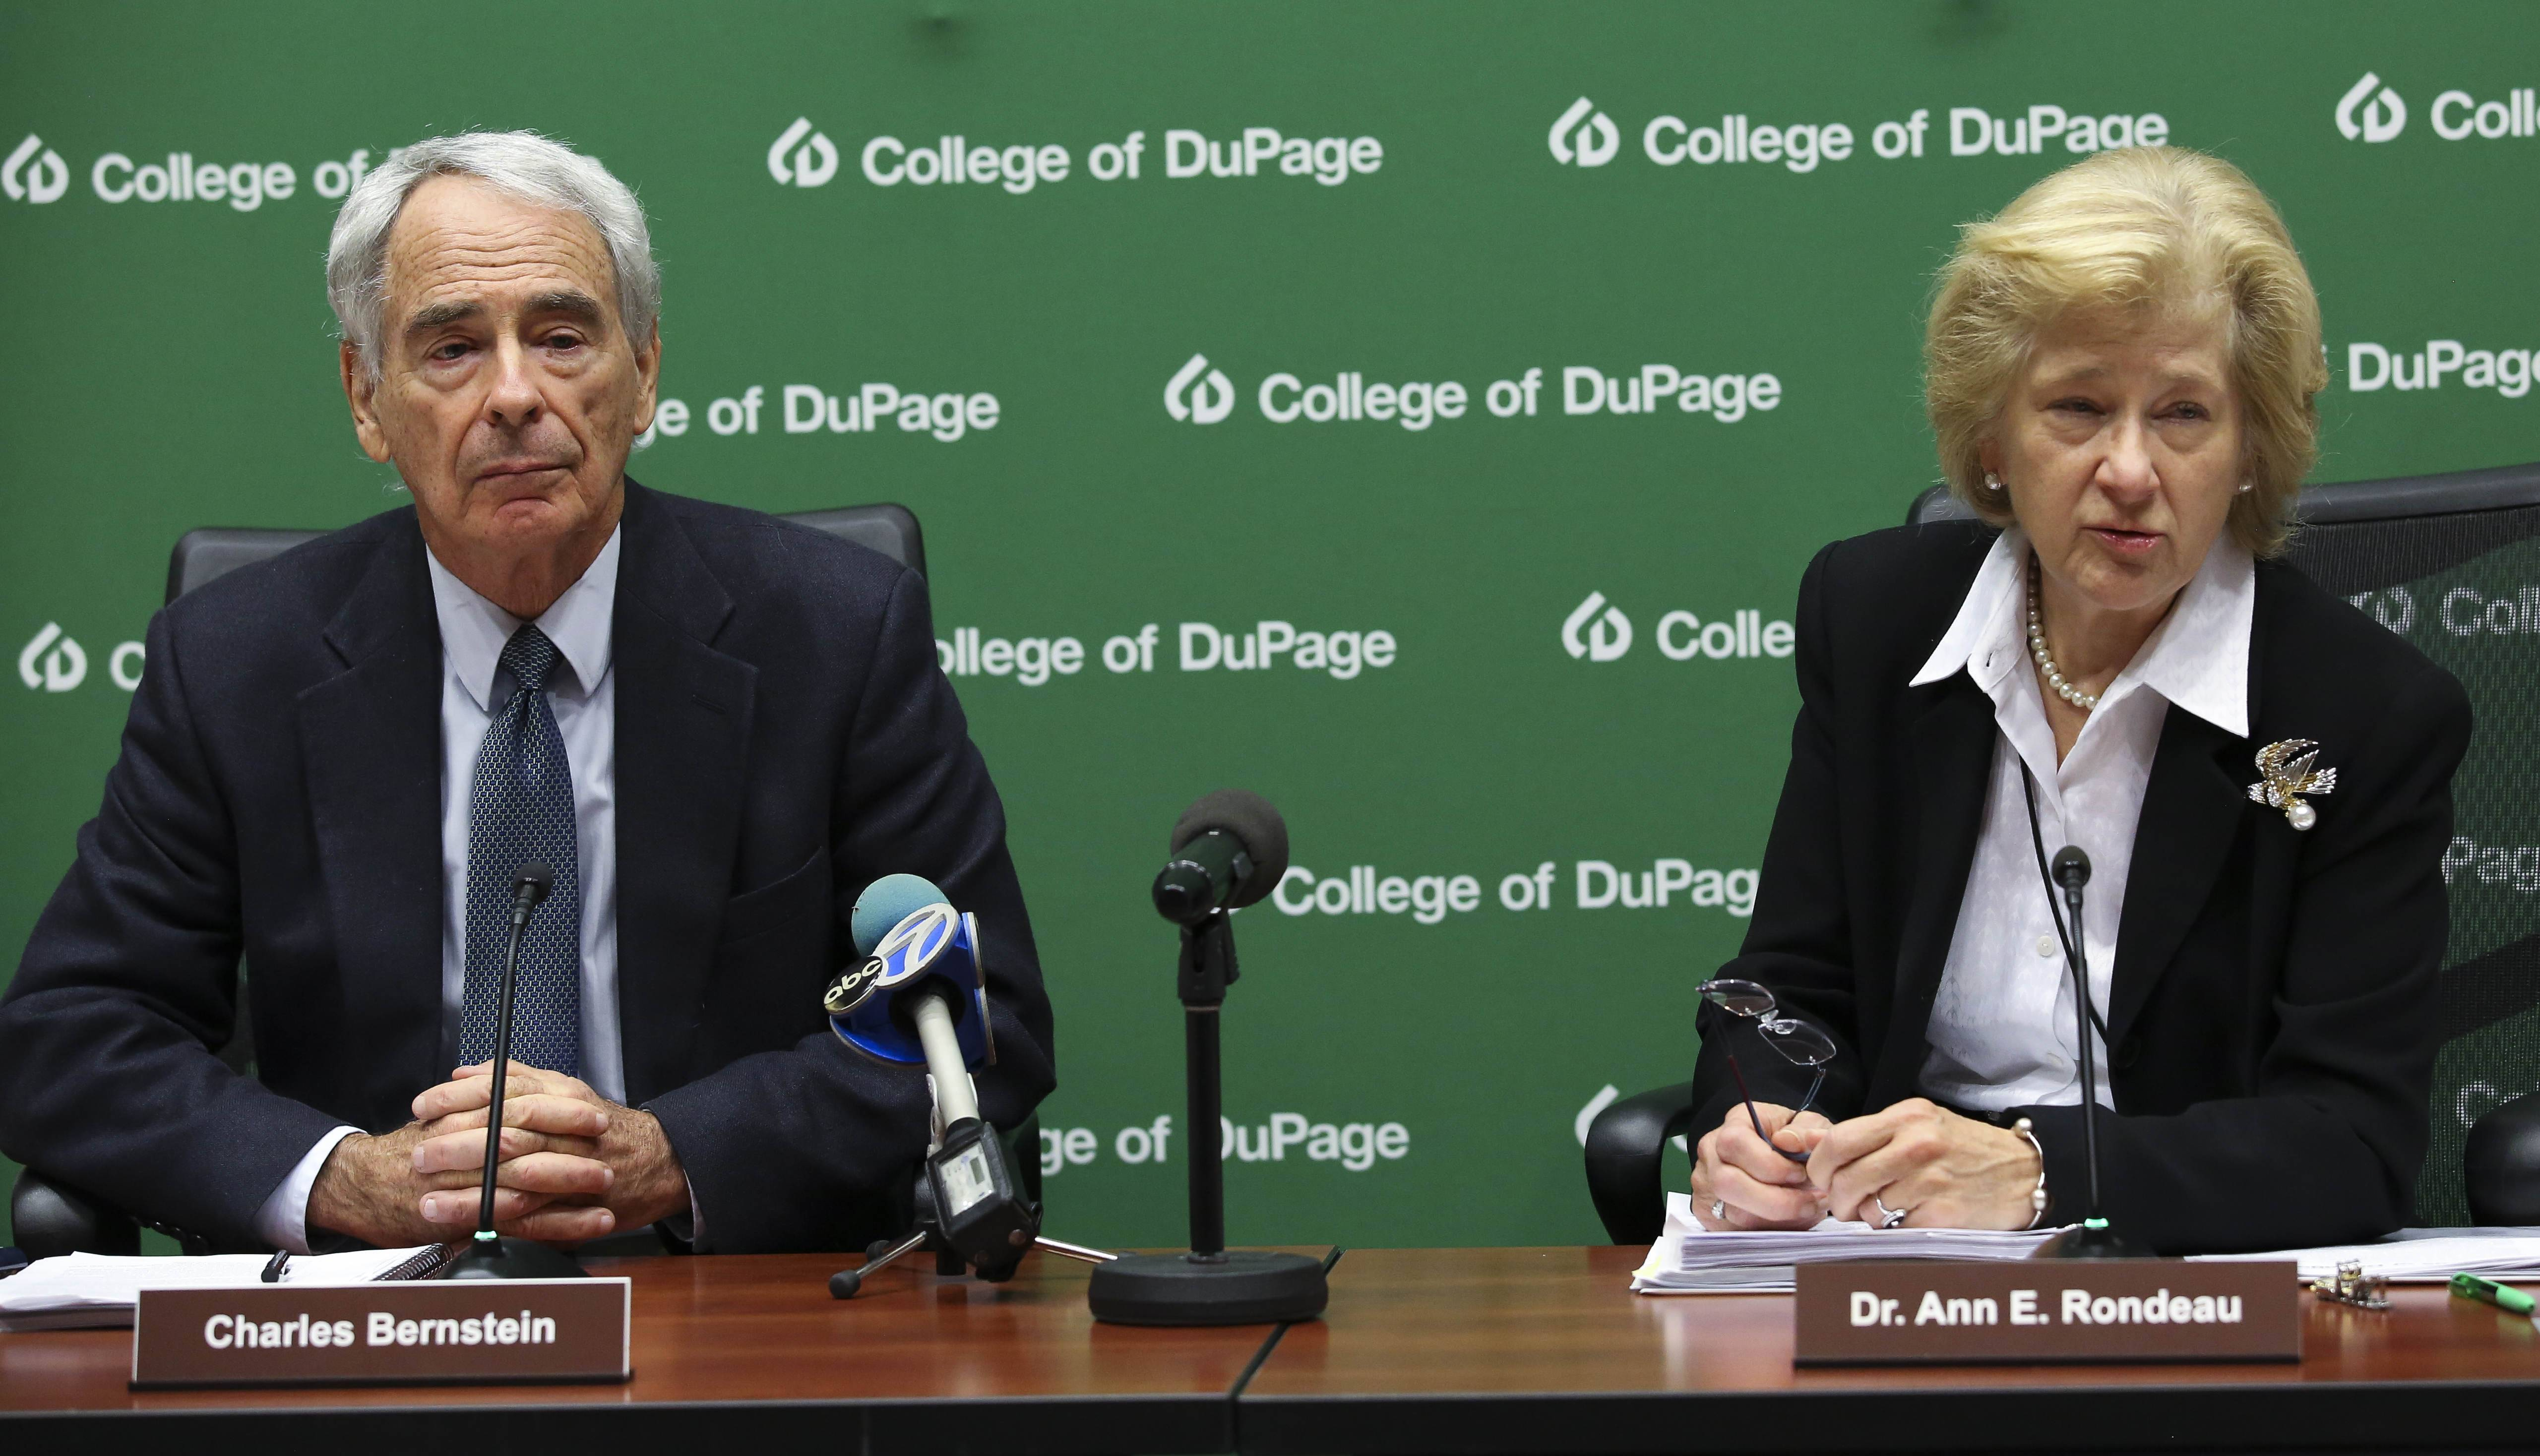 An audit suggests 19 areas College of DuPage can improve its operations and oversight.